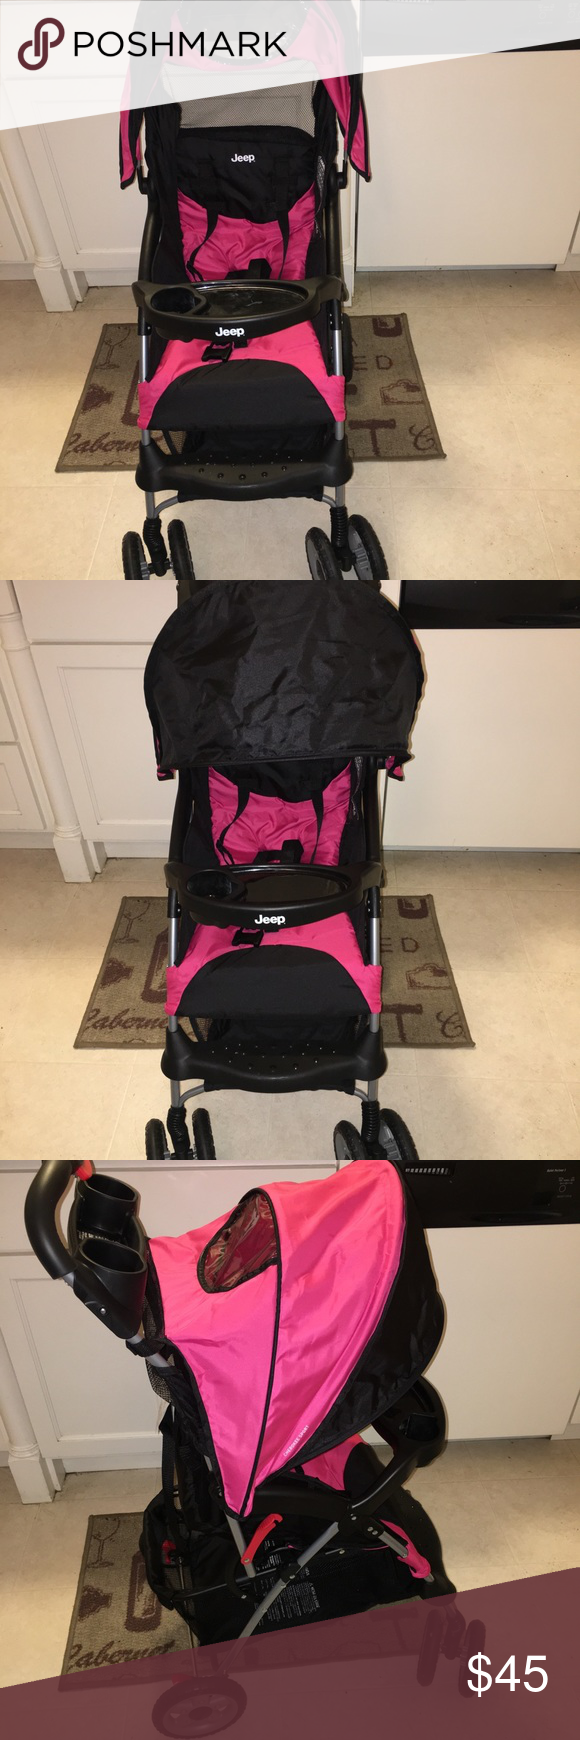 Jeep stroller Jeep stroller in really good condition jeep